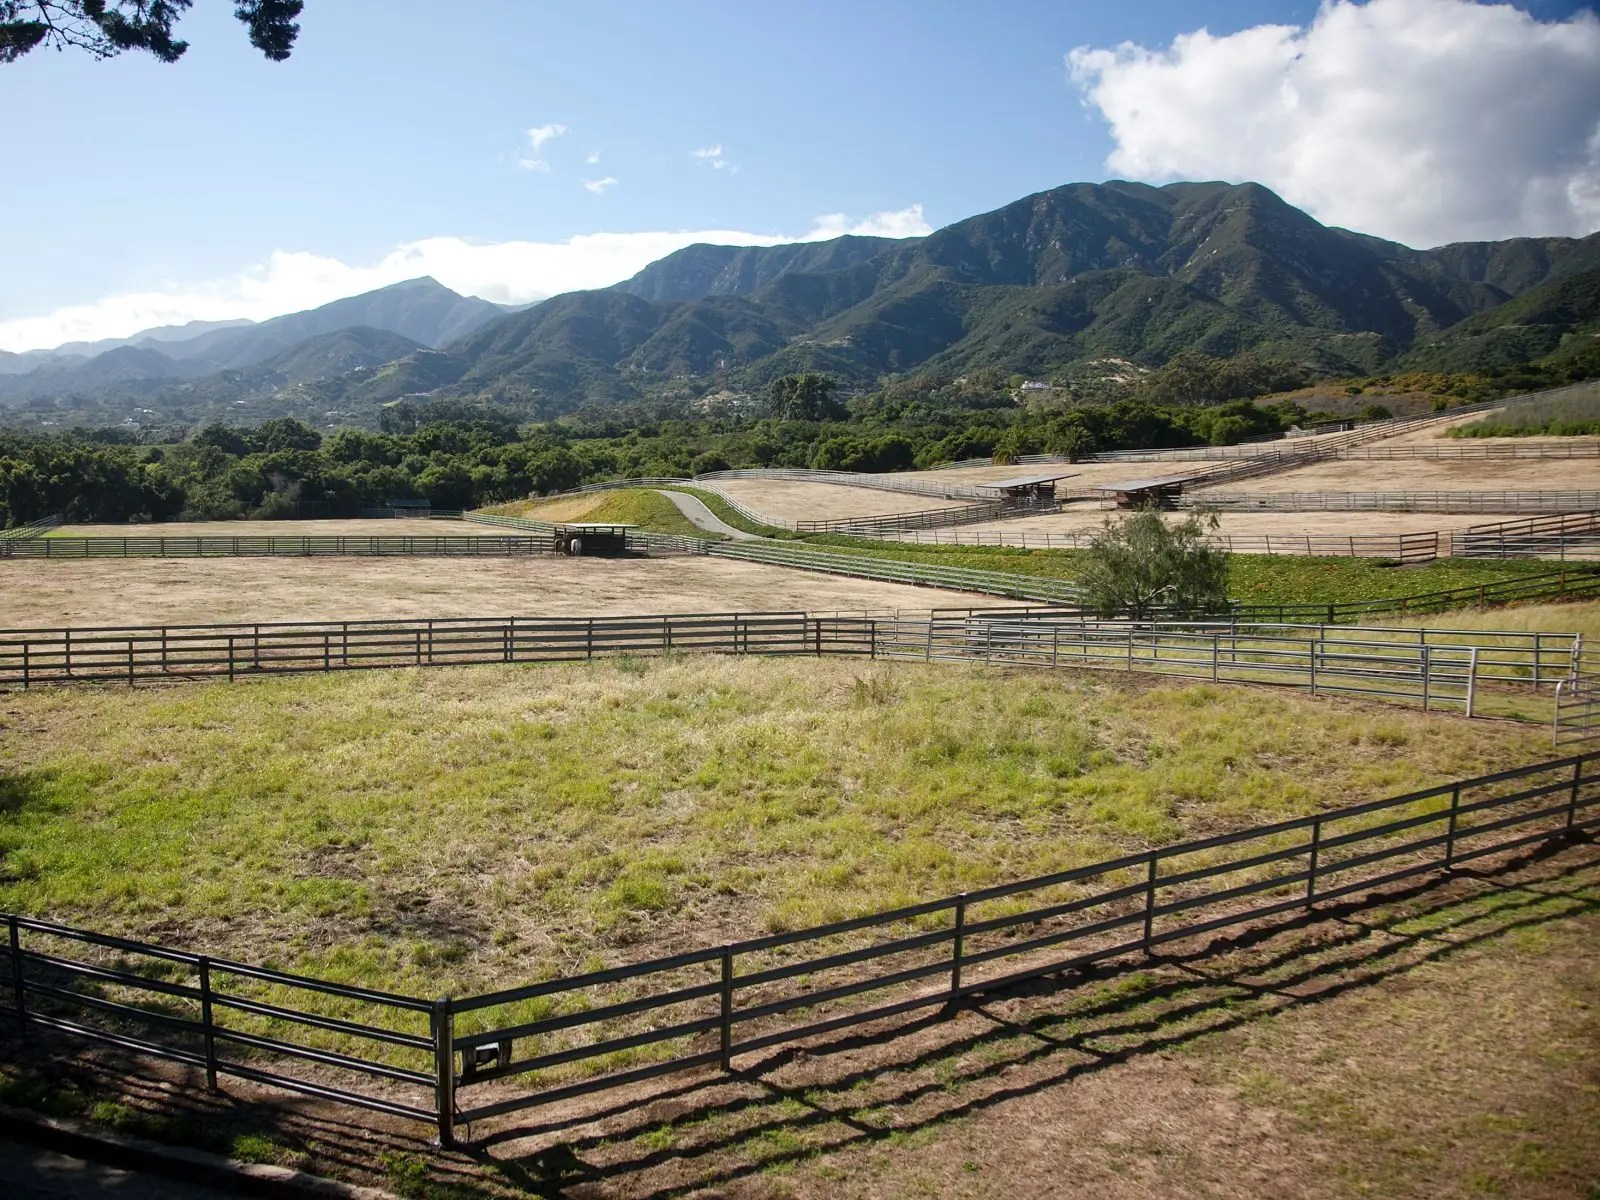 One last look at the incredible Rancho San Carlos in Montecito.